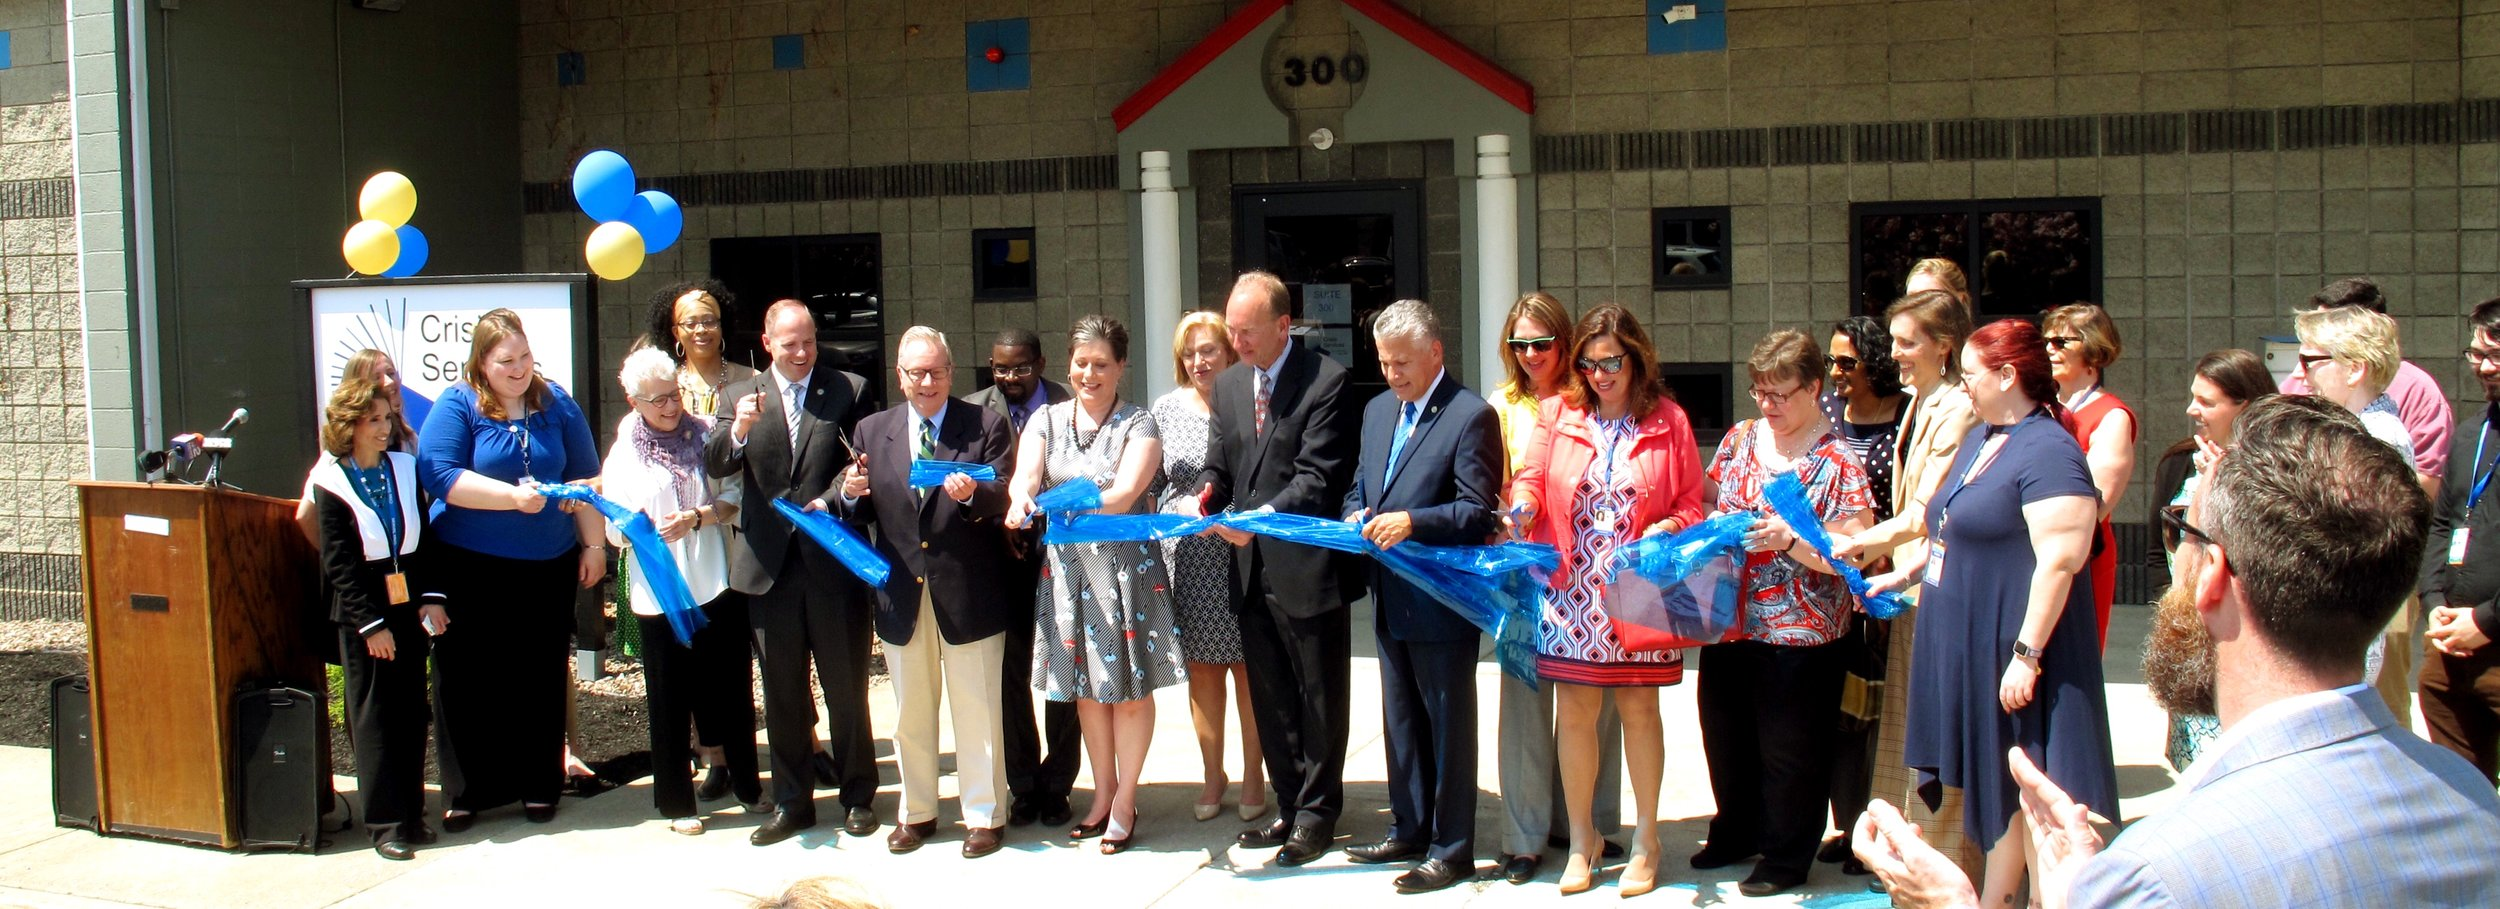 Ribbon Cutting at New Bldg.jpg